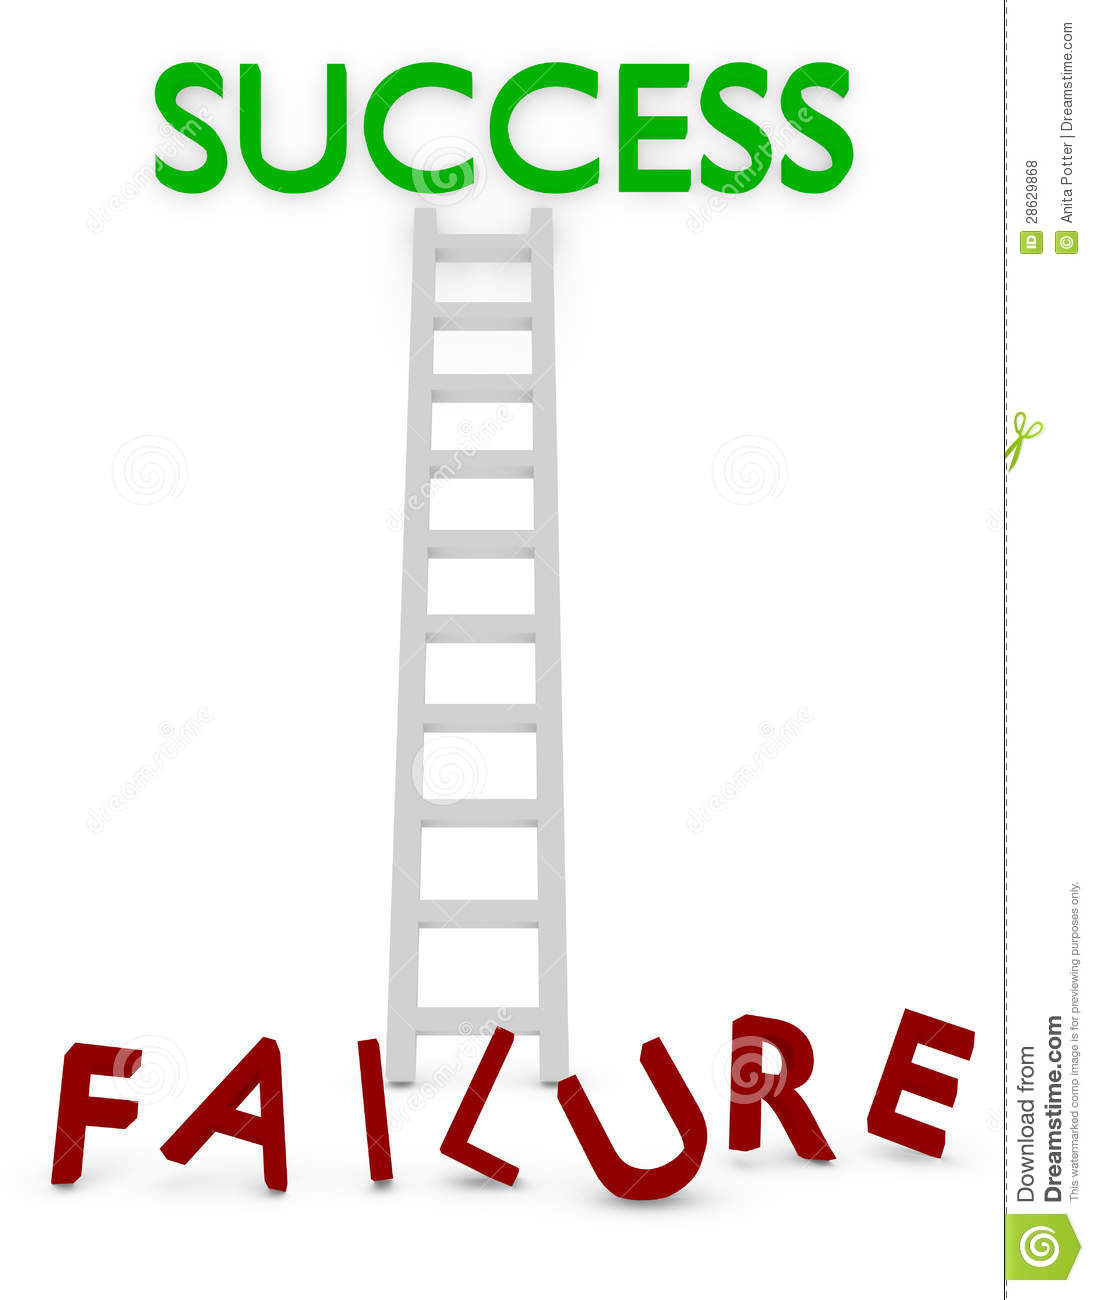 3d Render Of A Ladder To Success Or Failure Royalty Free